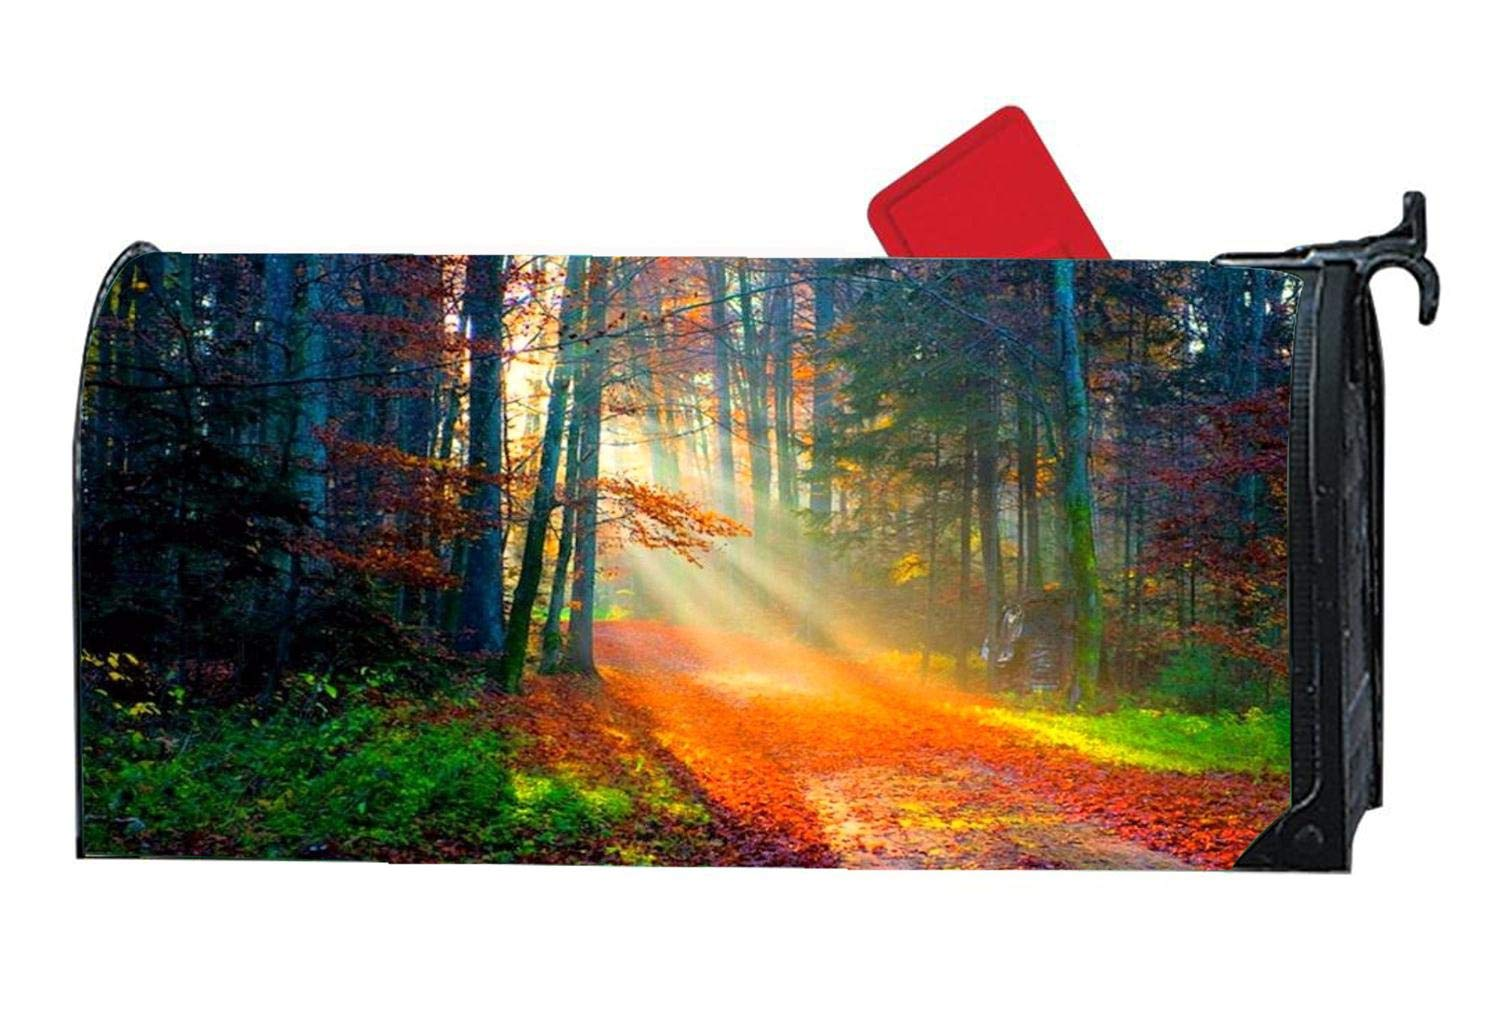 Autumn Magnetic Mailbox Cover Mailwrap, All Weather Vinyl, Standard Size 6.5'' x 19'' for Metal/Steel Mailboxes - Autumn Forest Sunlight